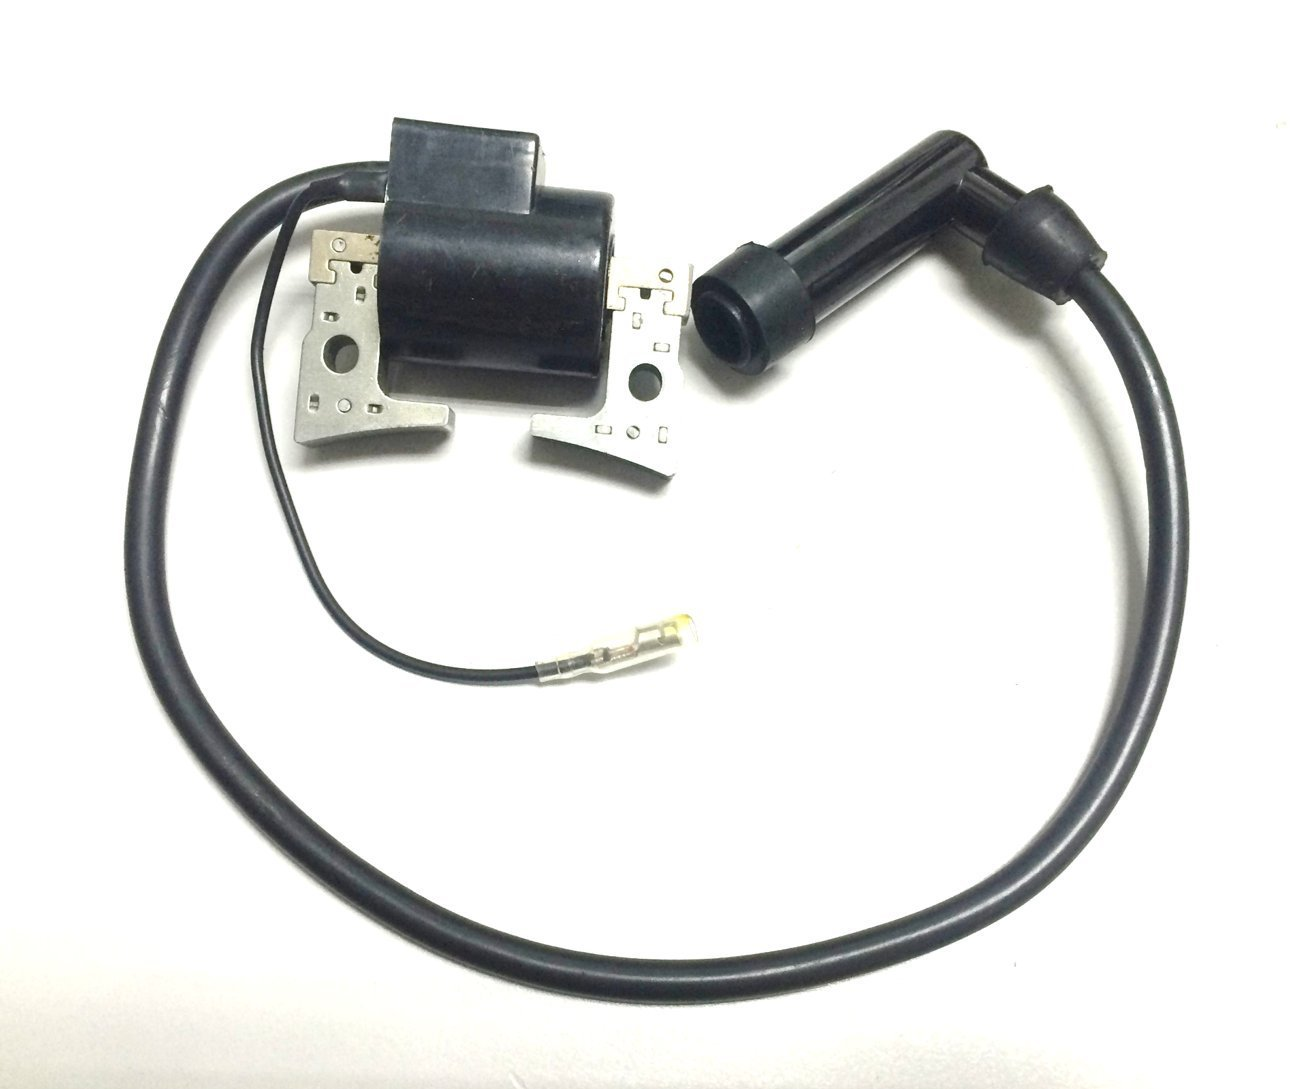 20A-79431-01 Ignition Coil Assy CP fit Robin Subaru EX13 EX17 EX21 277-79431-11 065-50002 YAMASCO 277-79431-11